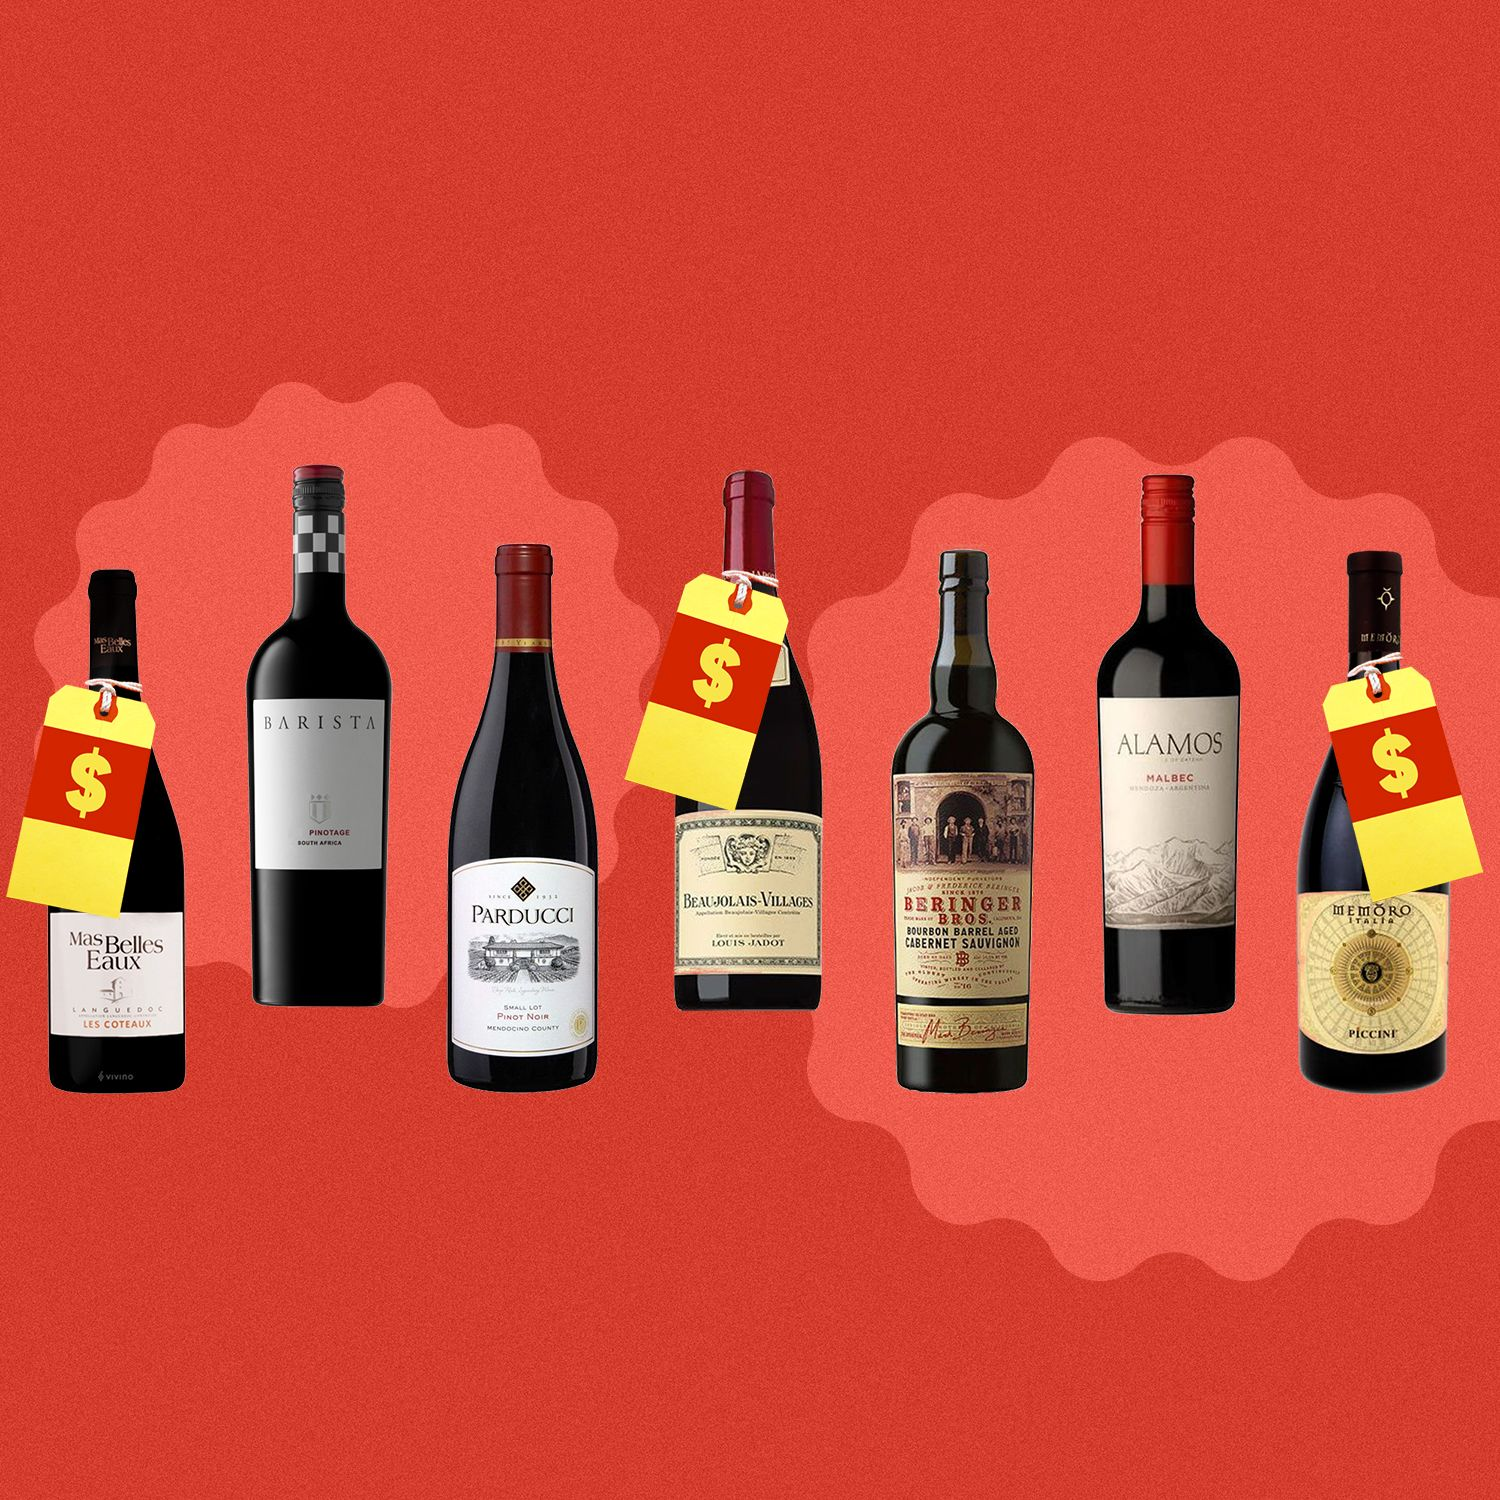 25 Best Cheap Wines Top Inexpensive Wine Brands,What 50p Coins Are Worth Money